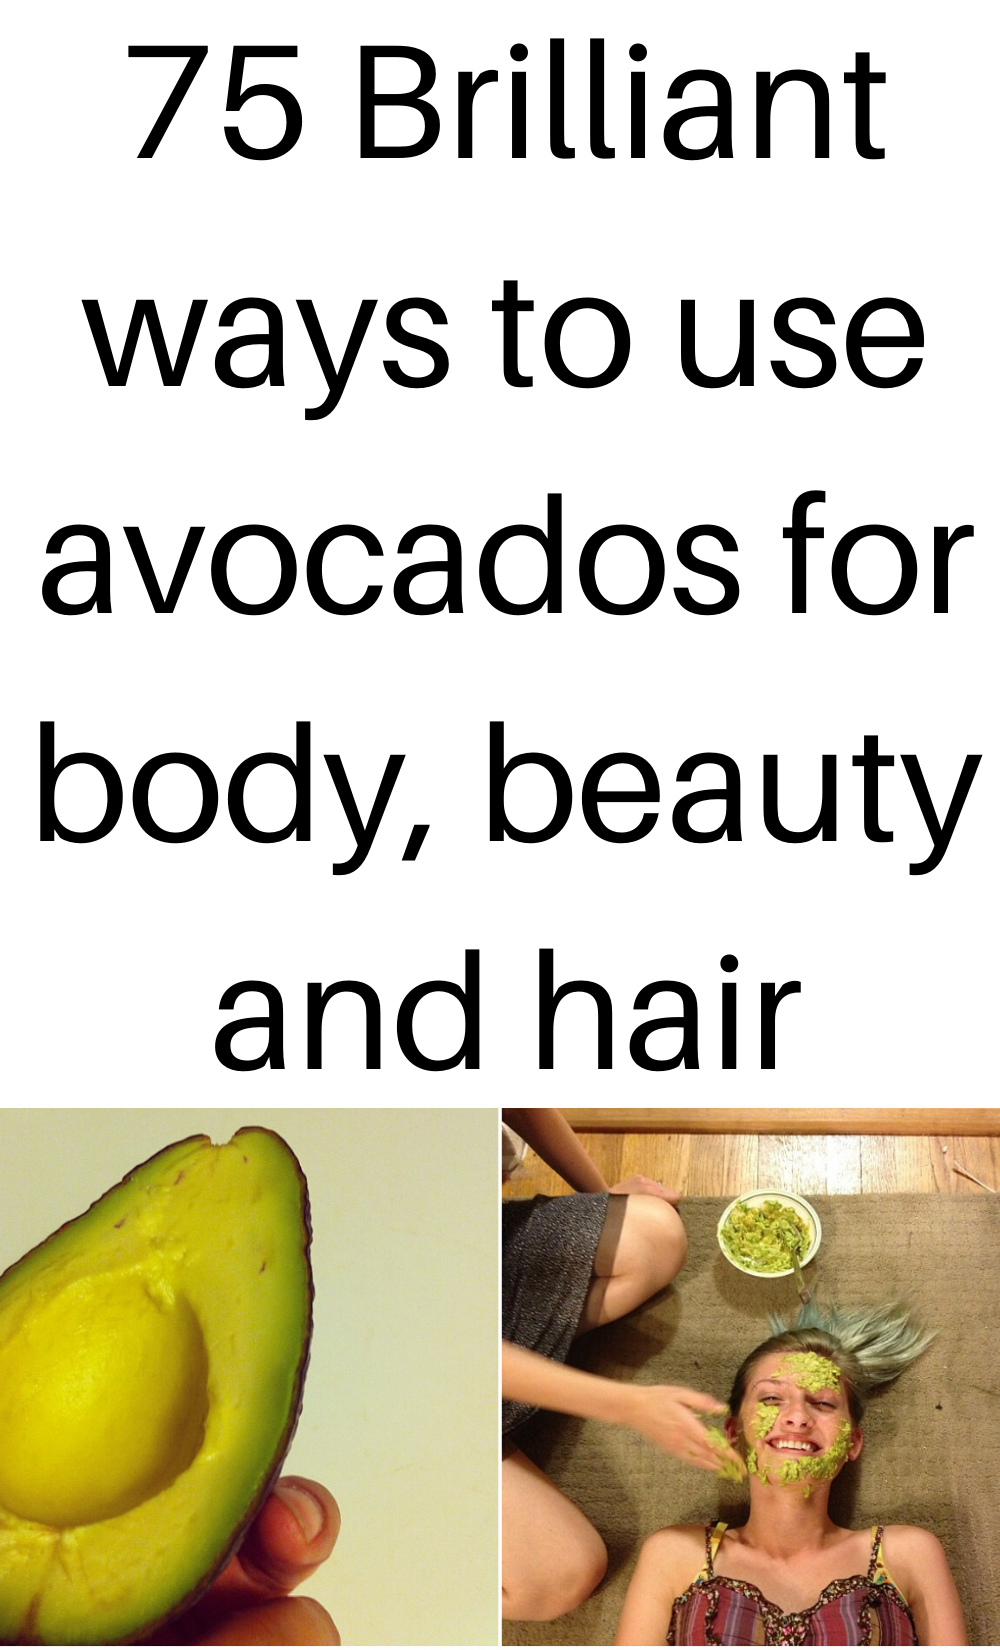 8 Brilliant ways to use avocados for body, beauty and hair